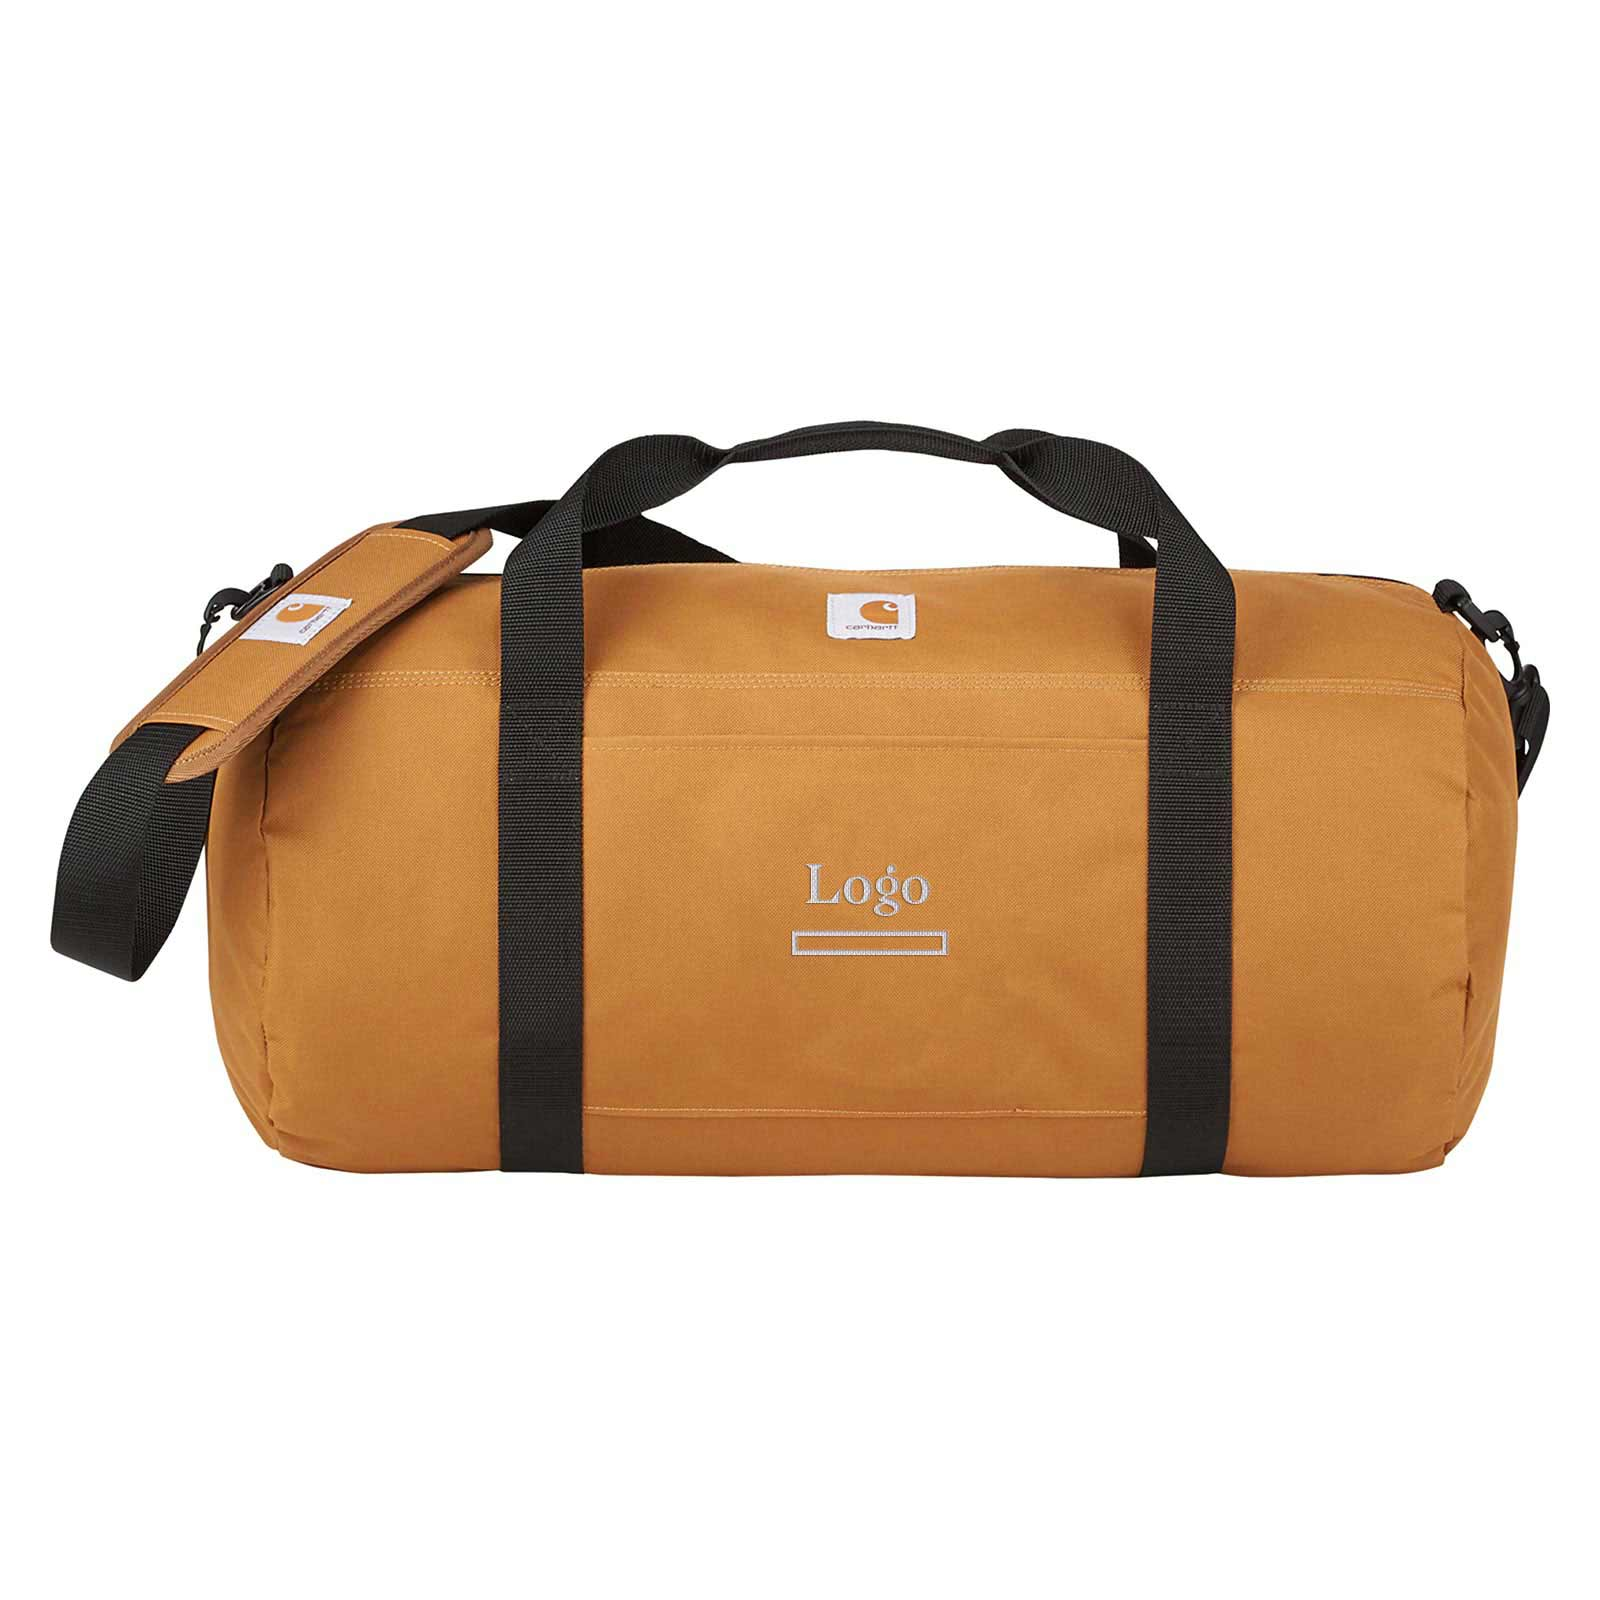 200177 20 packable duffel bag embroidered one location